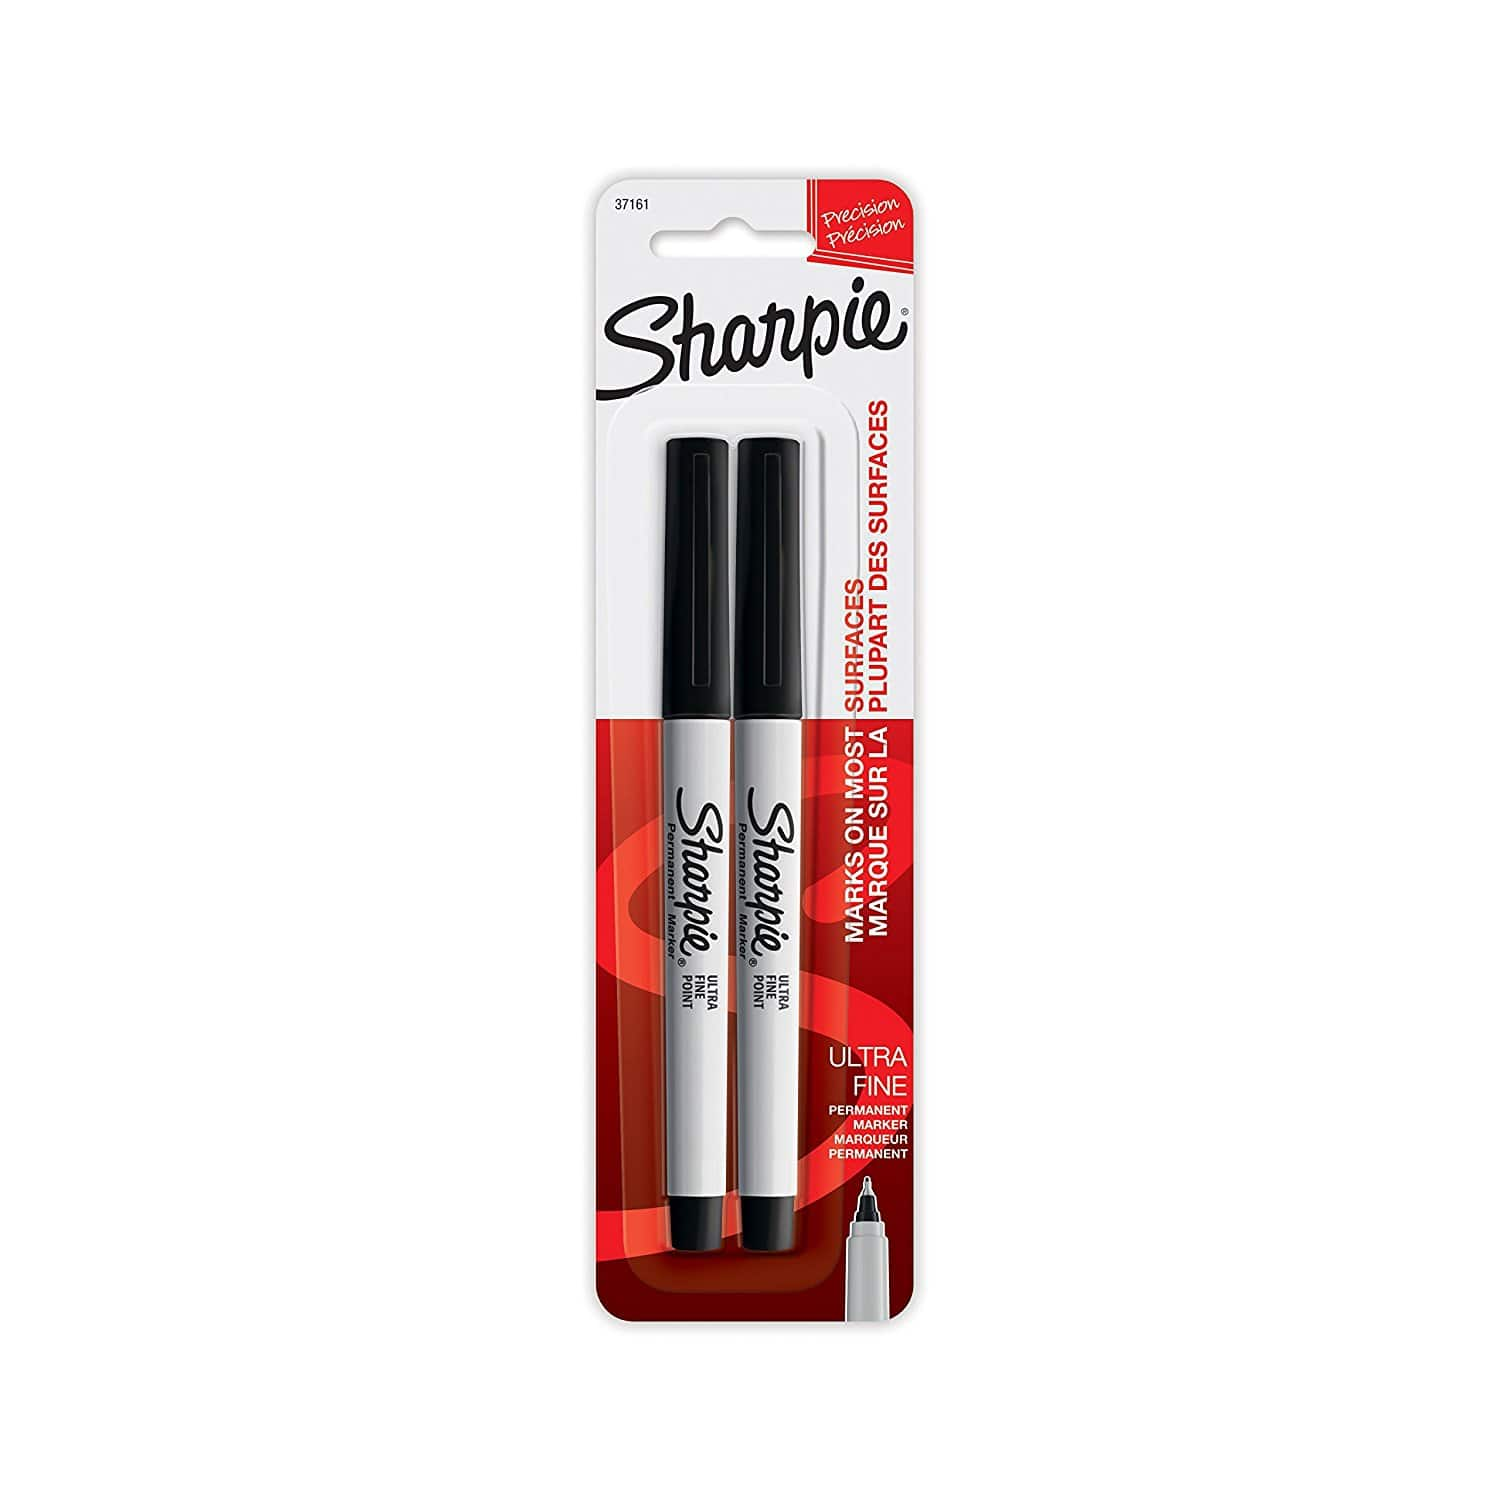 $1.64 shipped Sharpie Permanent Markers, Ultra Fine Point, Black, 2 Count w/ Prime @ Amazon